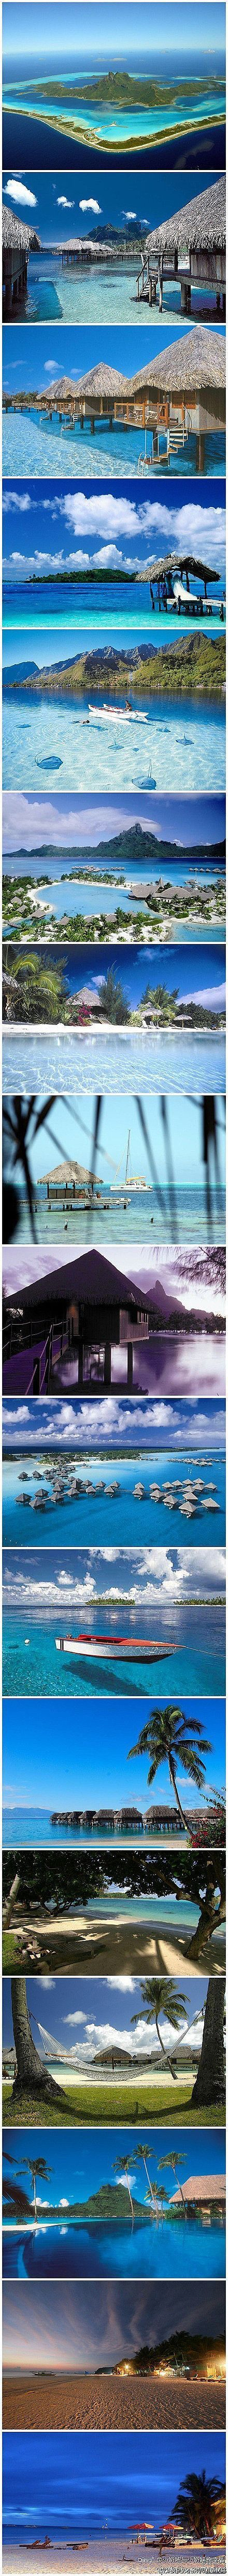 The tropical life of Bora Bora. Would love to pack my bags and go right now :) #tropical #island #beach #vacation